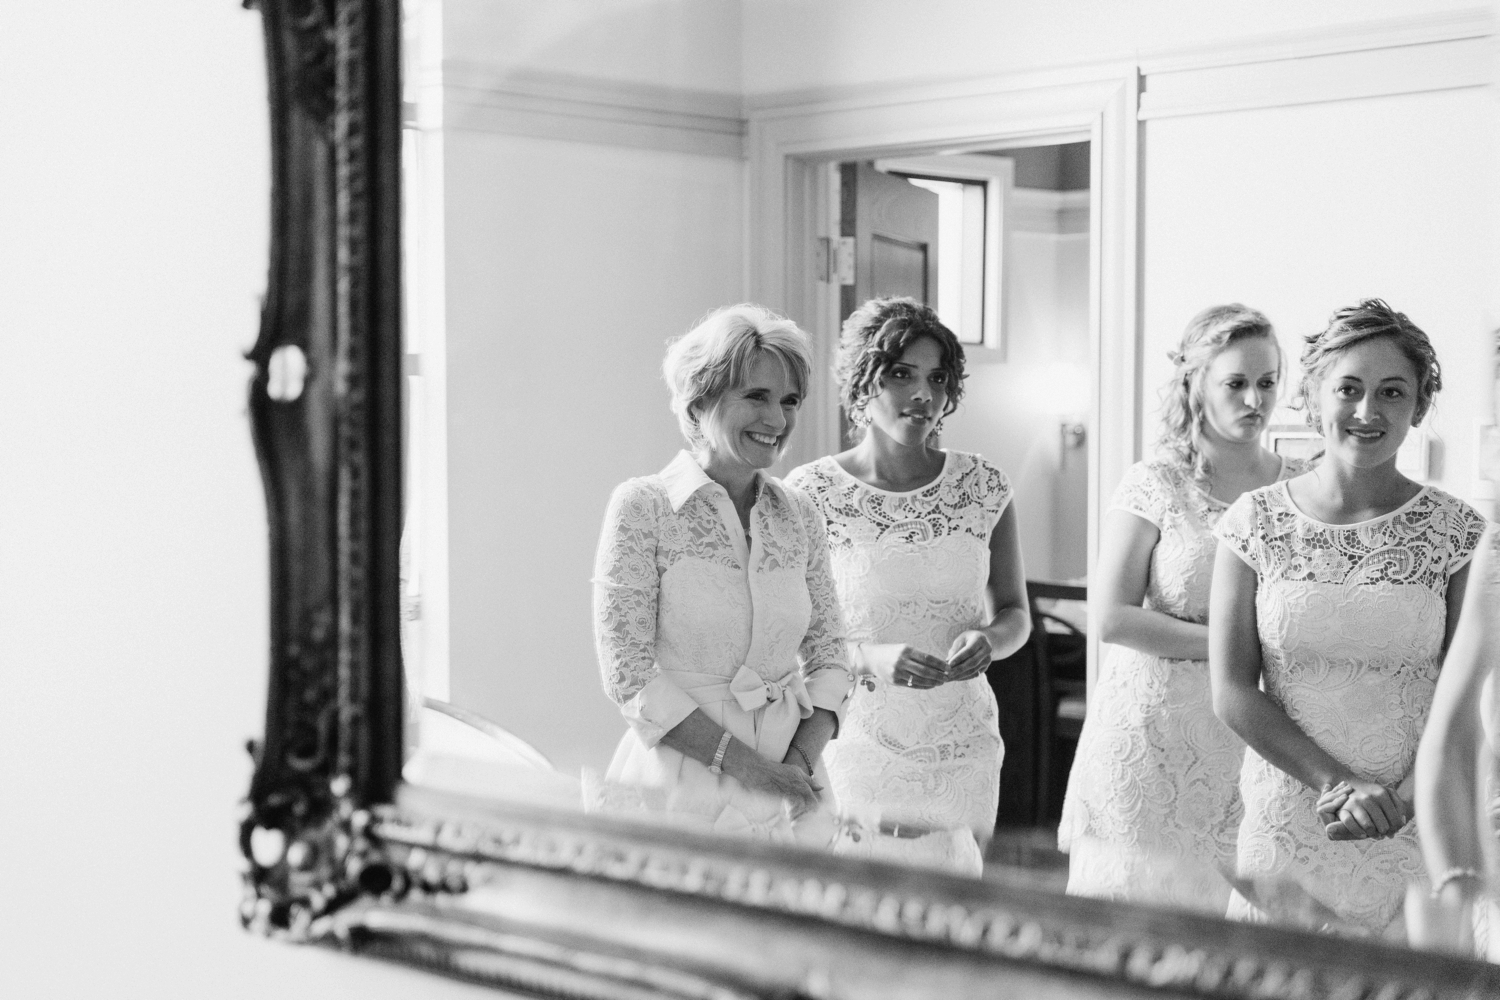 Wedding-at-The-Savannah-Center-West-Chester-Ohio-Photography-Chloe-Luka-Photography_7369.jpg